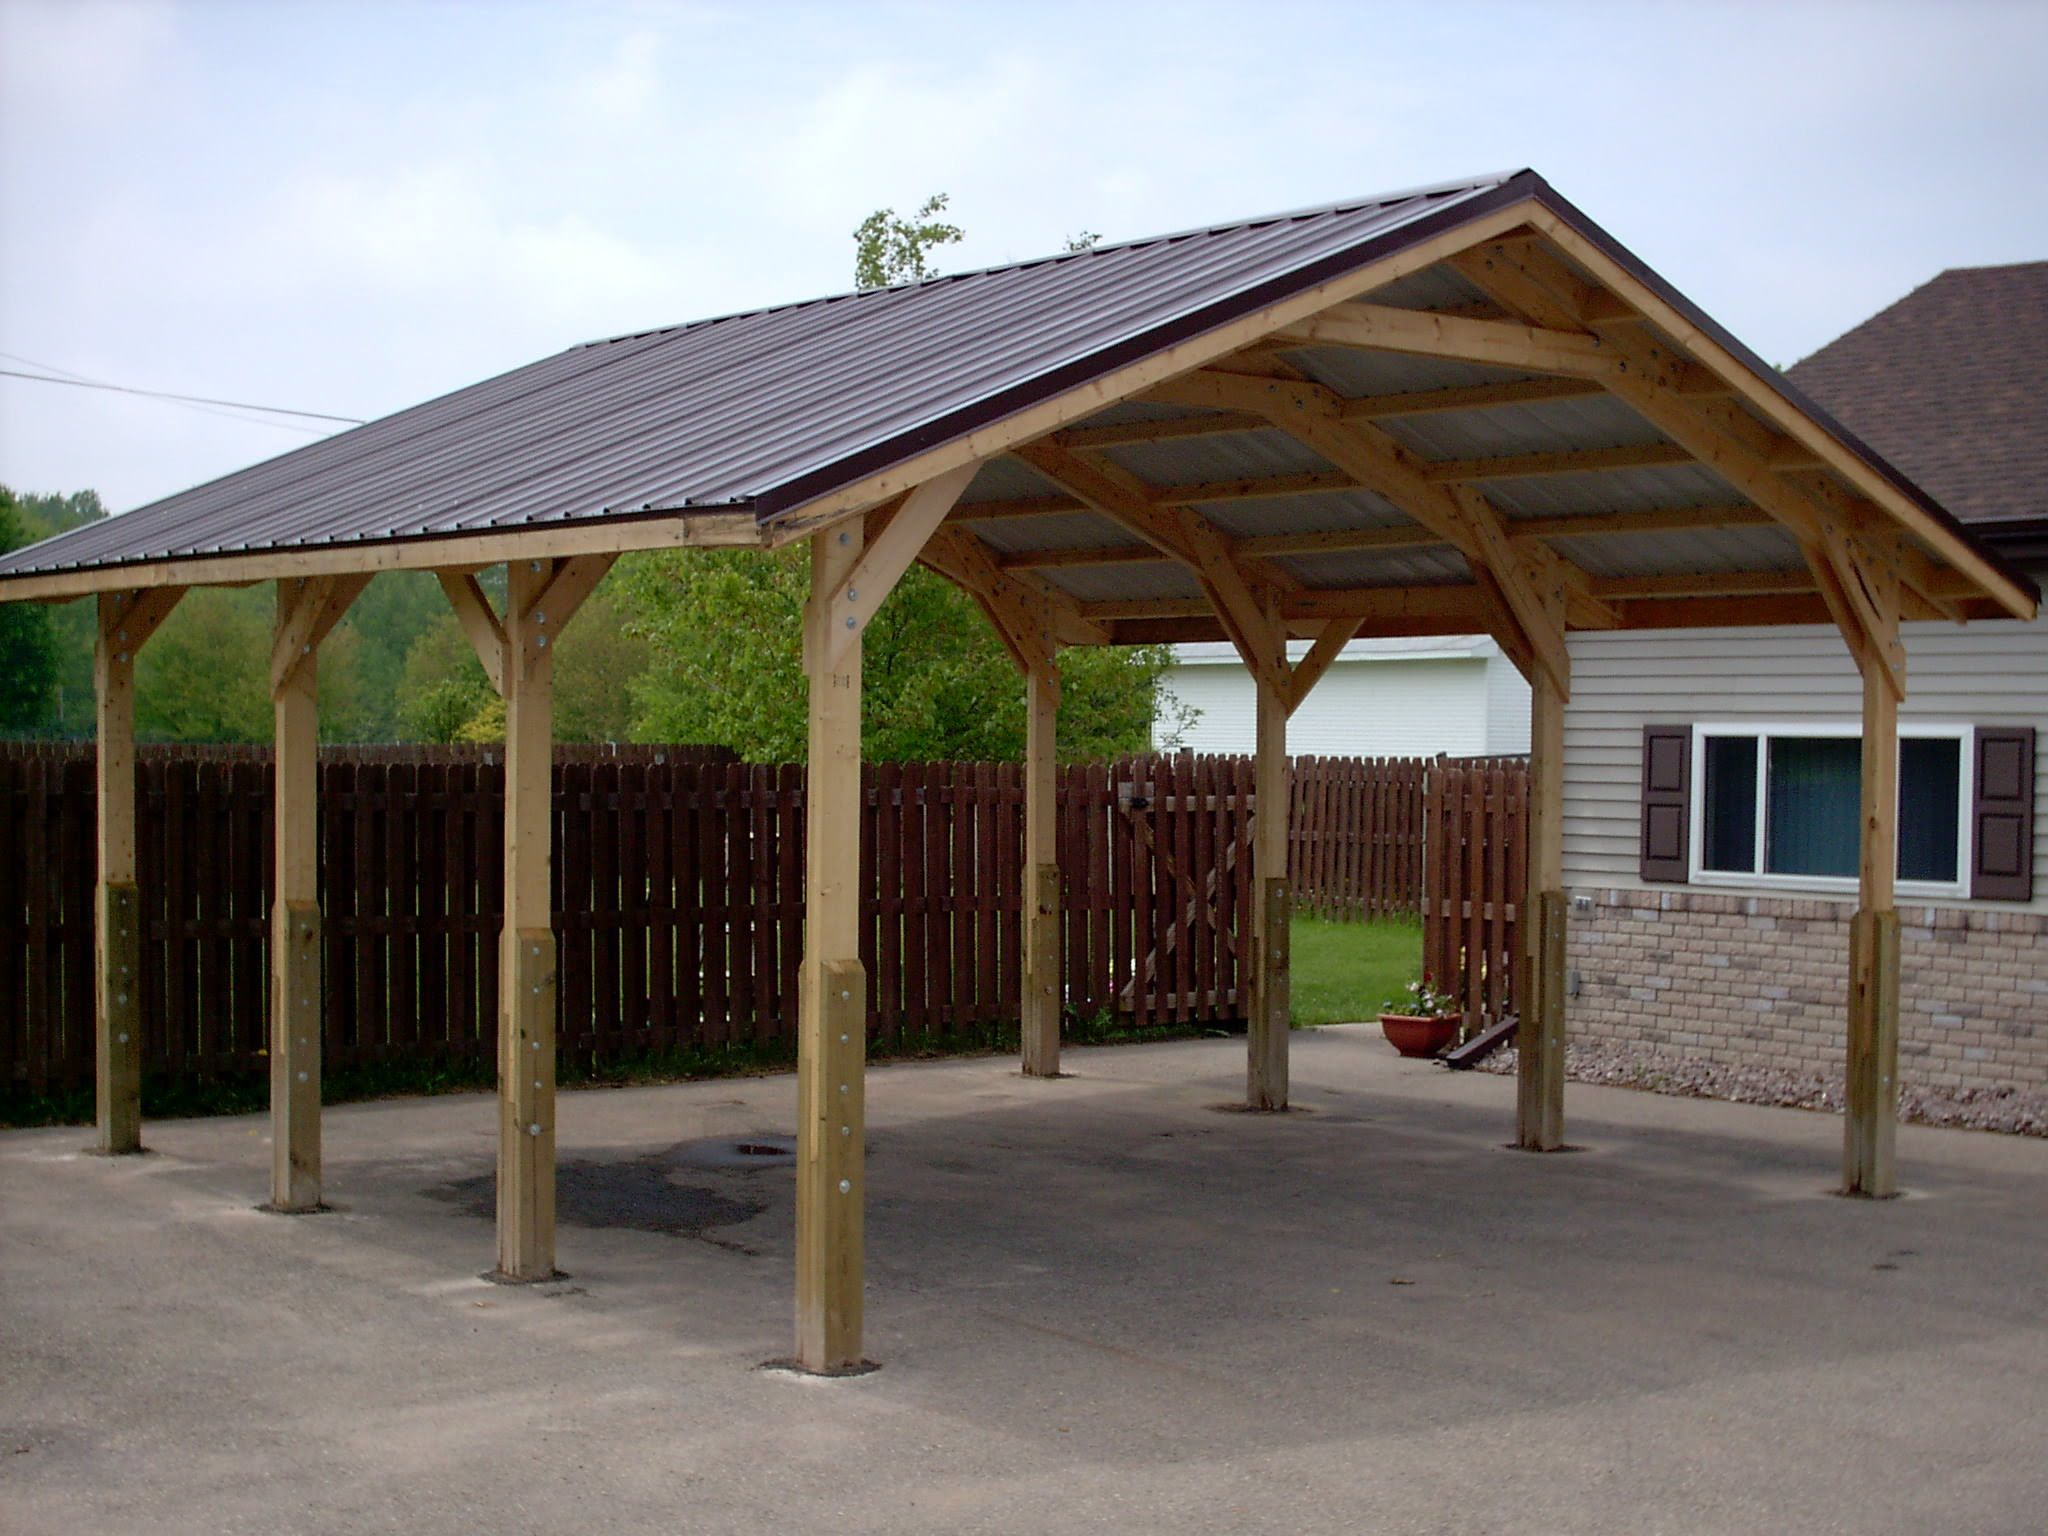 Car port shawanocarport wayneofbowler car ports for Garage with carport designs